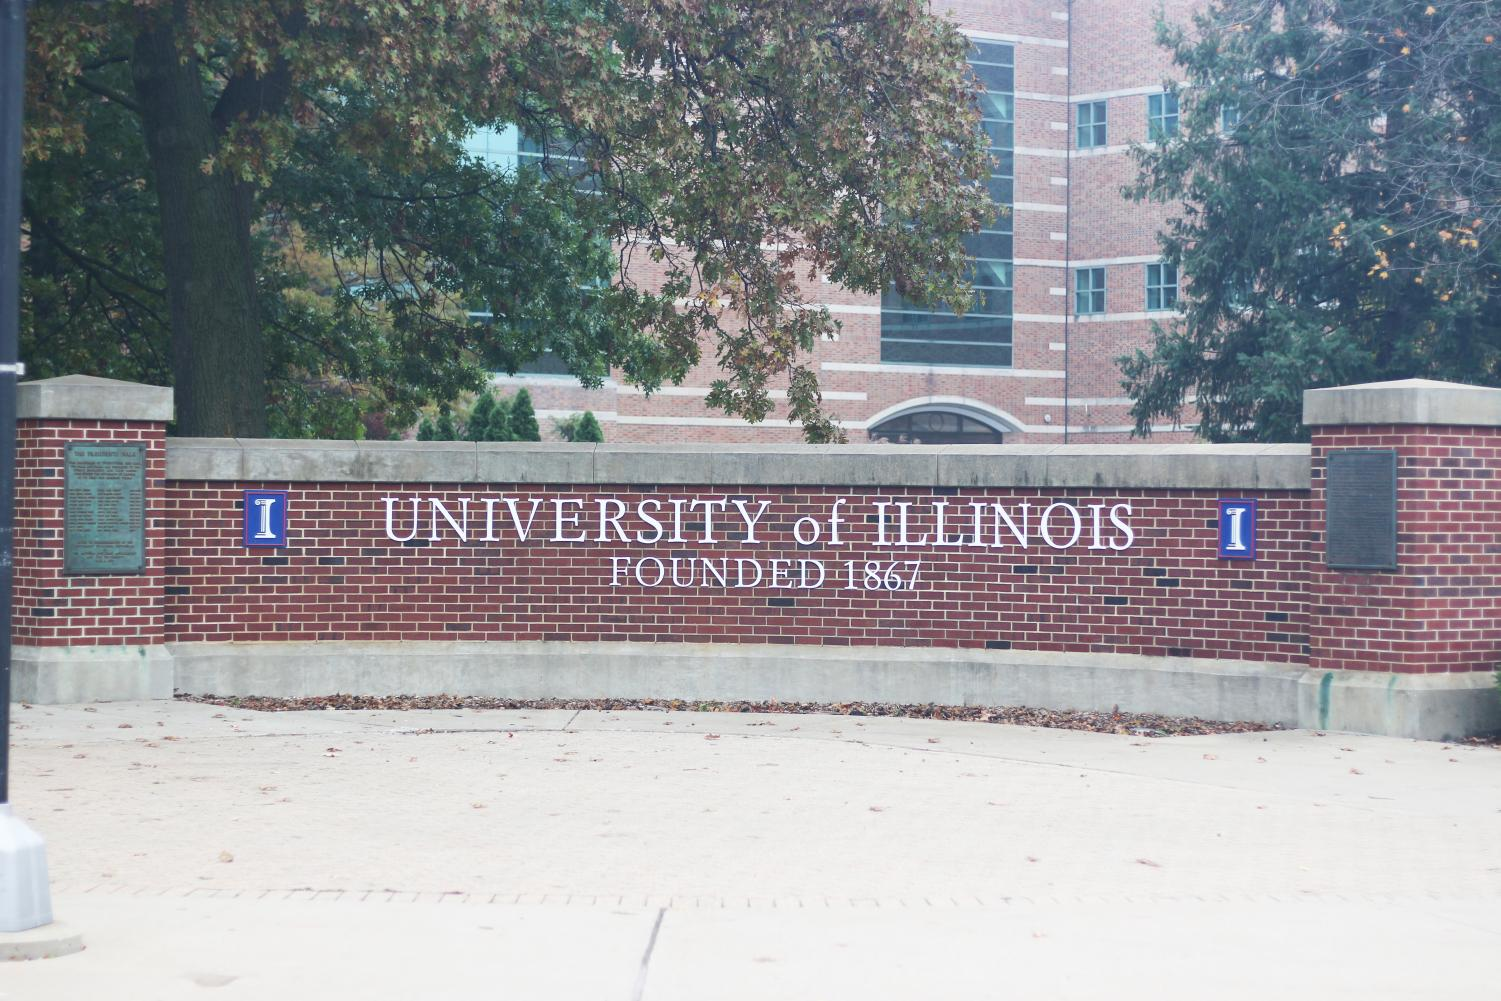 The entrance to the University of Illinois is on the corner of South Wright Street and University Avenue. This is often a popular place for students to take pictures when their families come to visit.